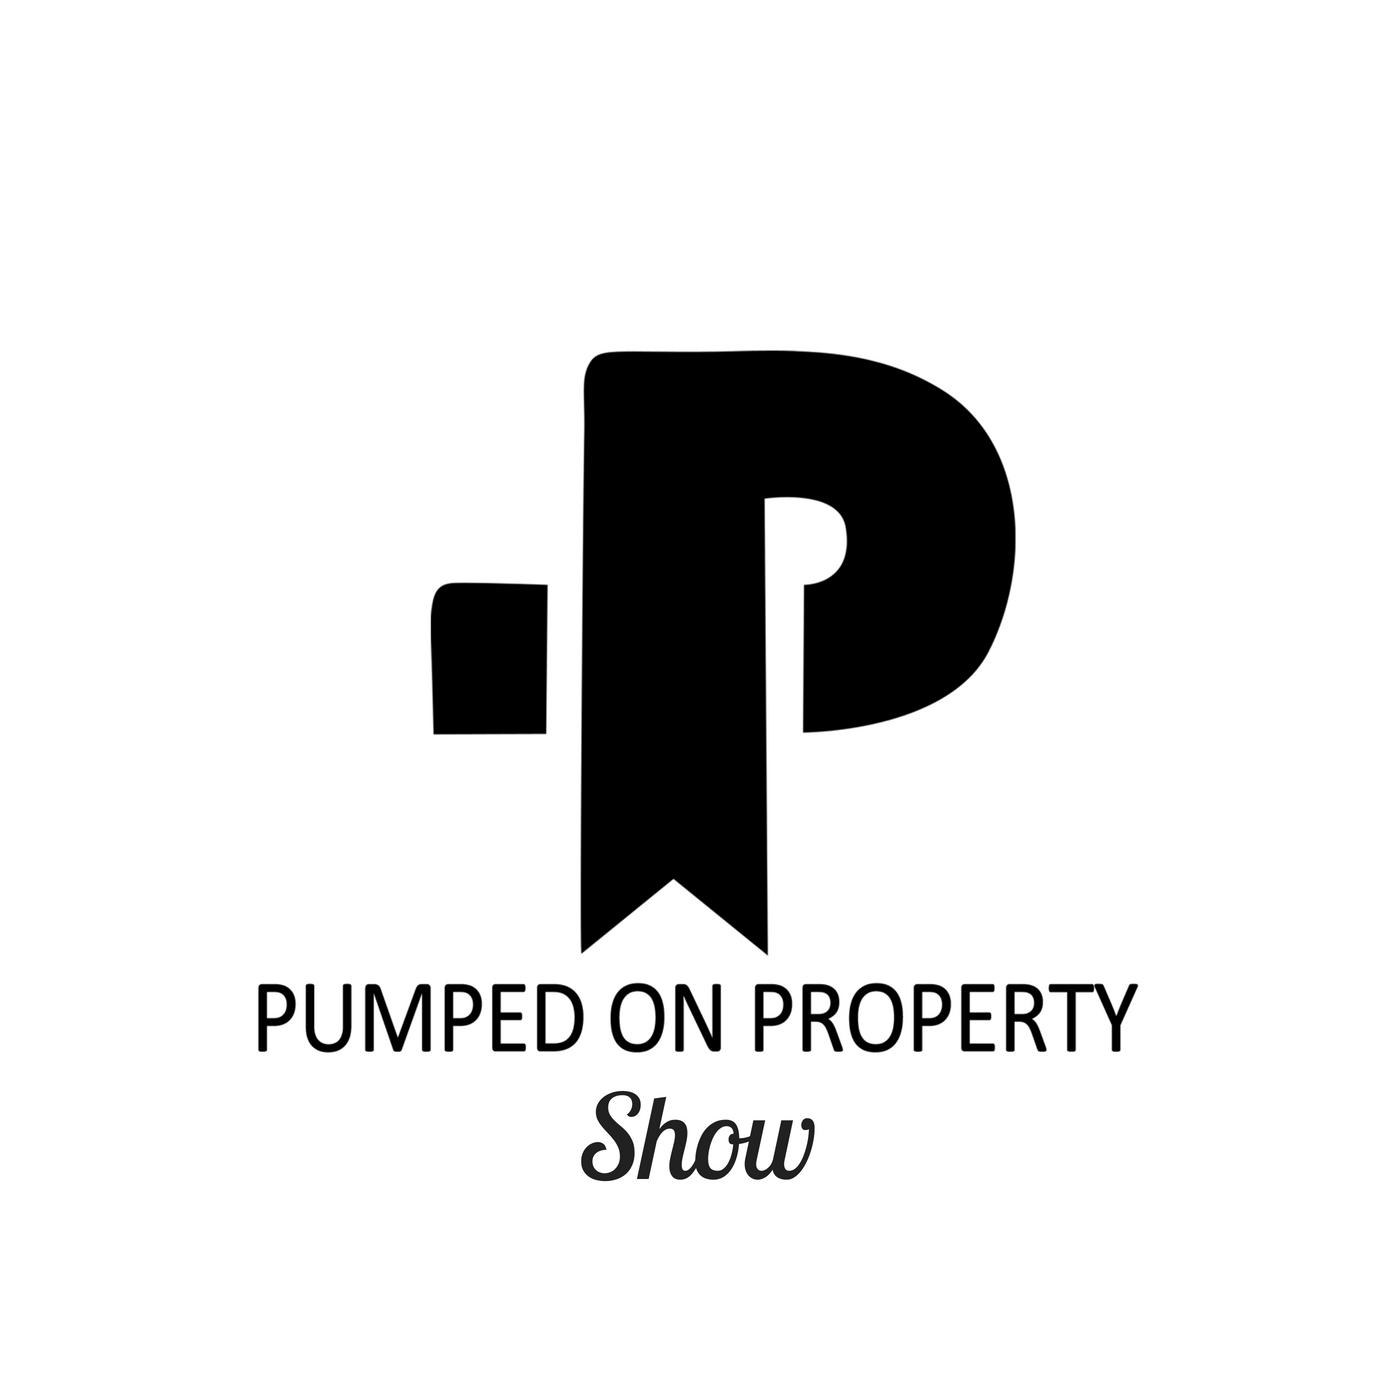 The Pumped On Property Show